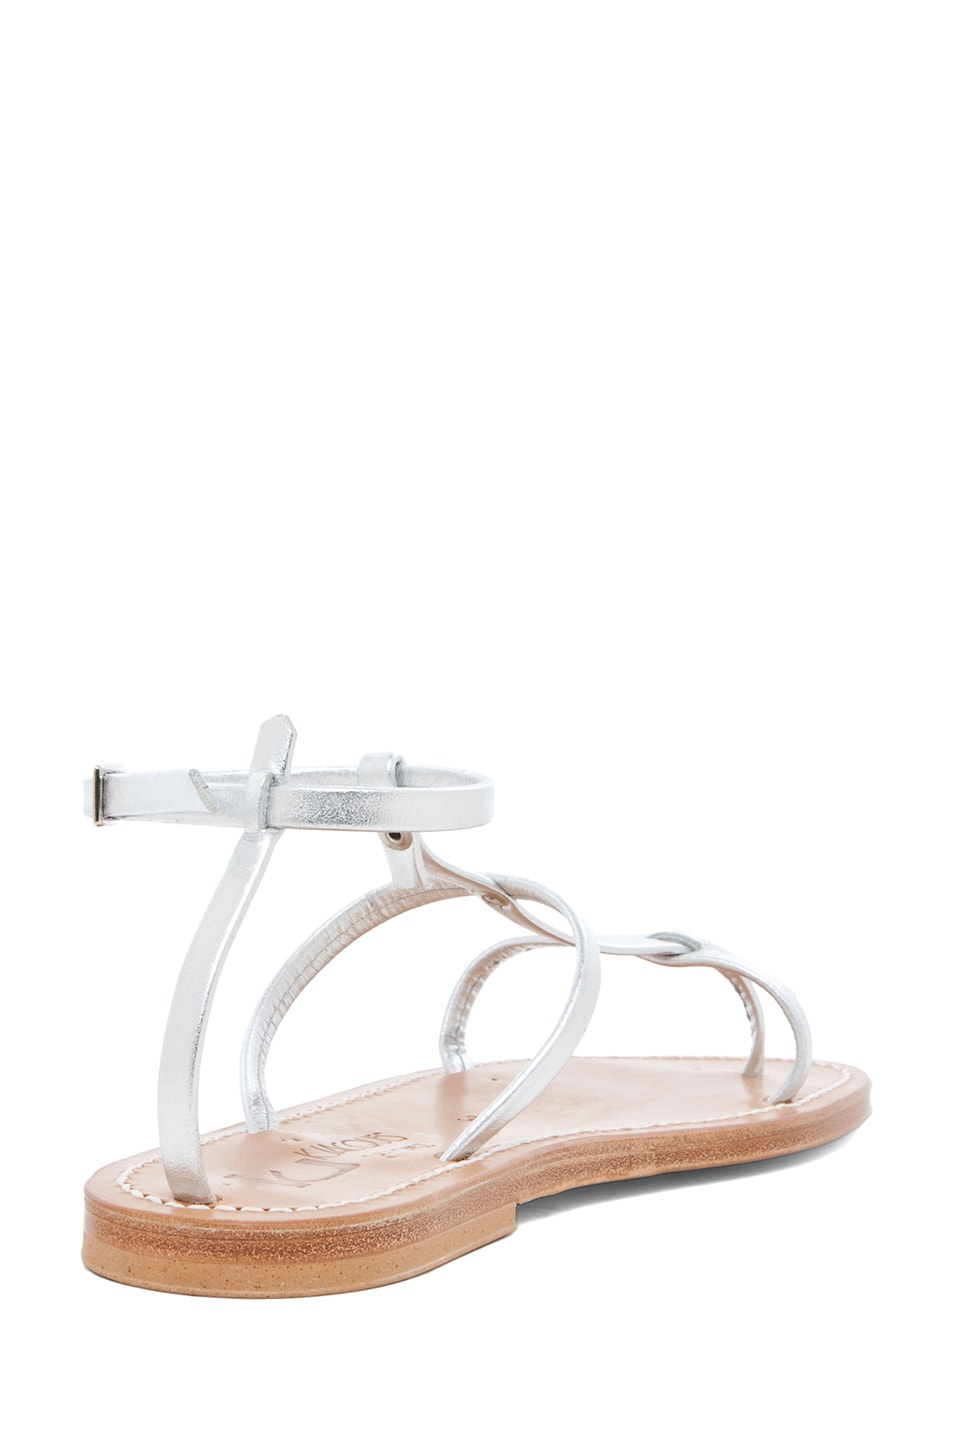 Image 3 of K Jacques Gina Calfskin Gladiator Sandal in Silver